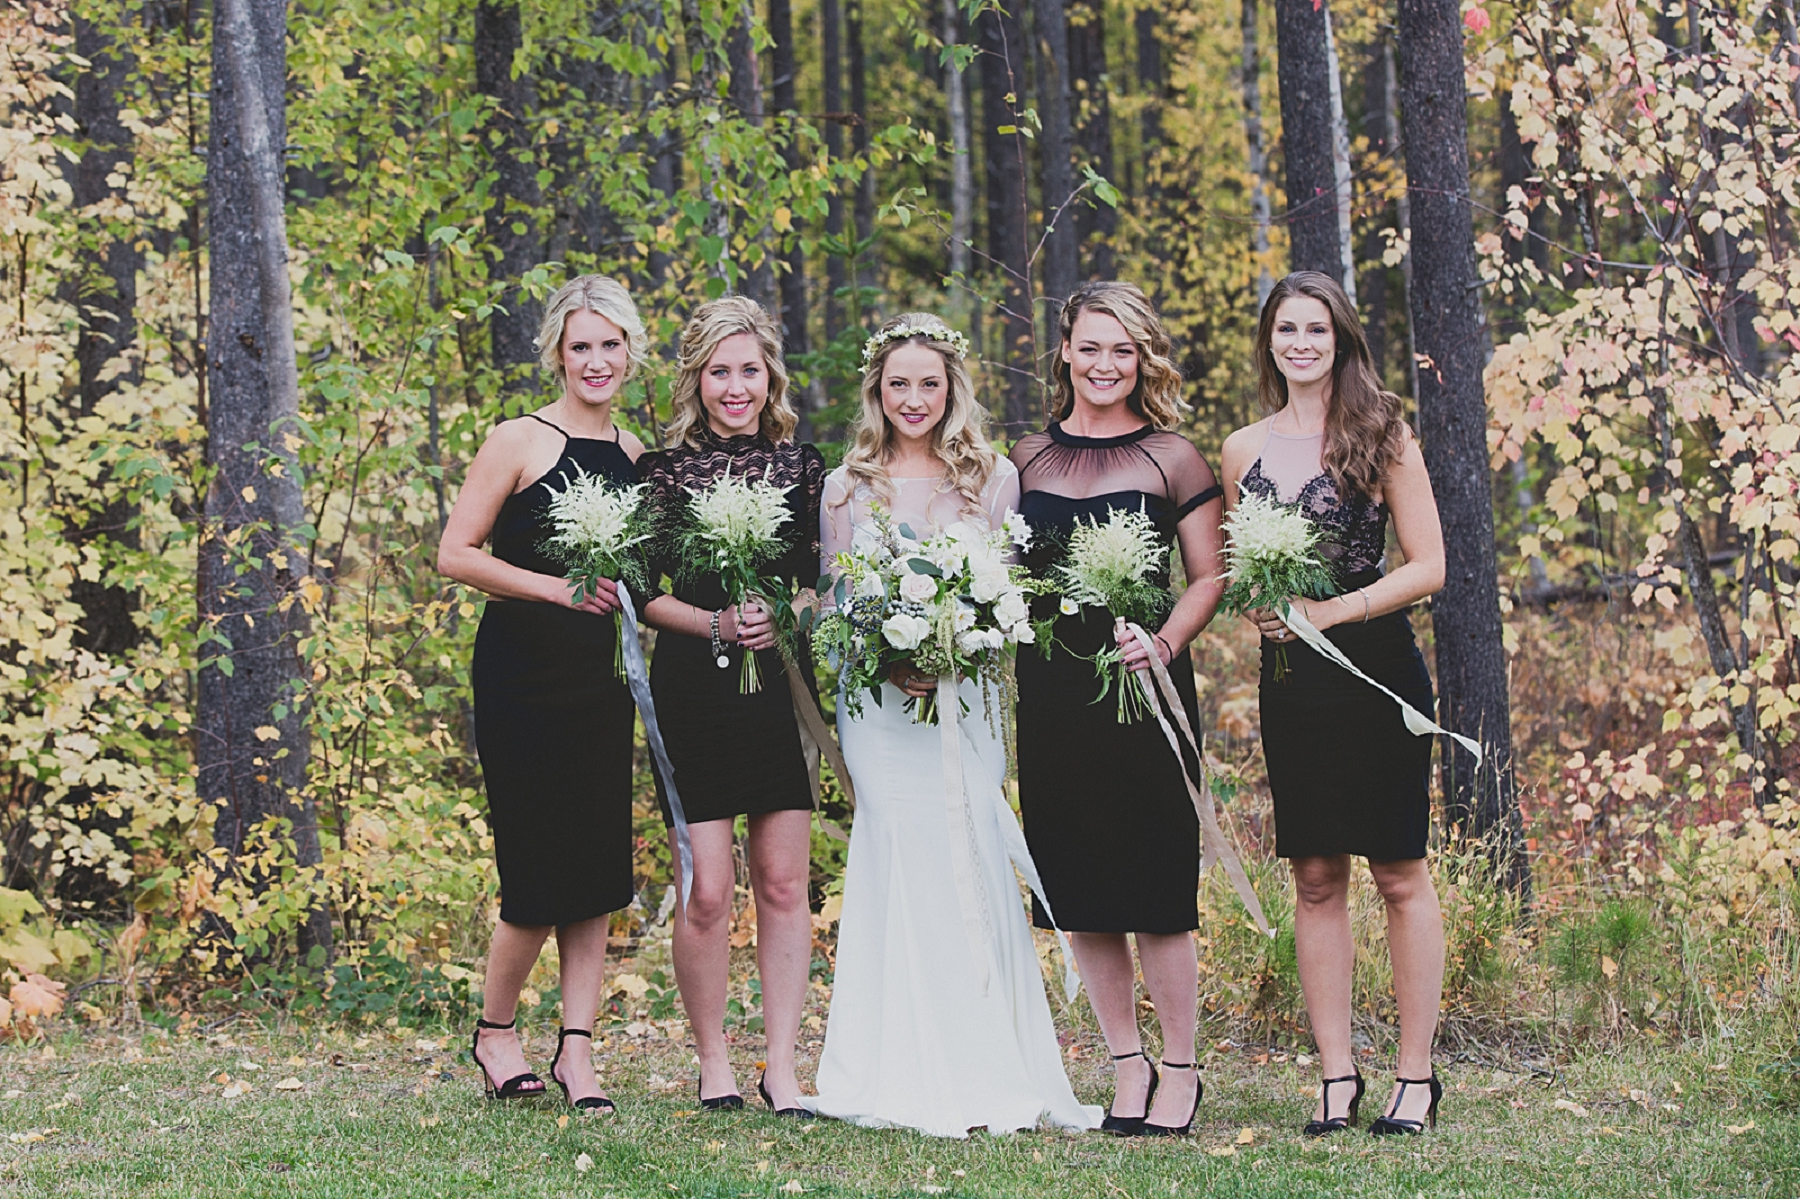 Jennifer_Mooney_Photo_glacier_park_wedding_Beargrass_florals_fall_wedding_elegant_montana_destination_velvet_bride_katie_may_dress_verona_gown_00039.jpg